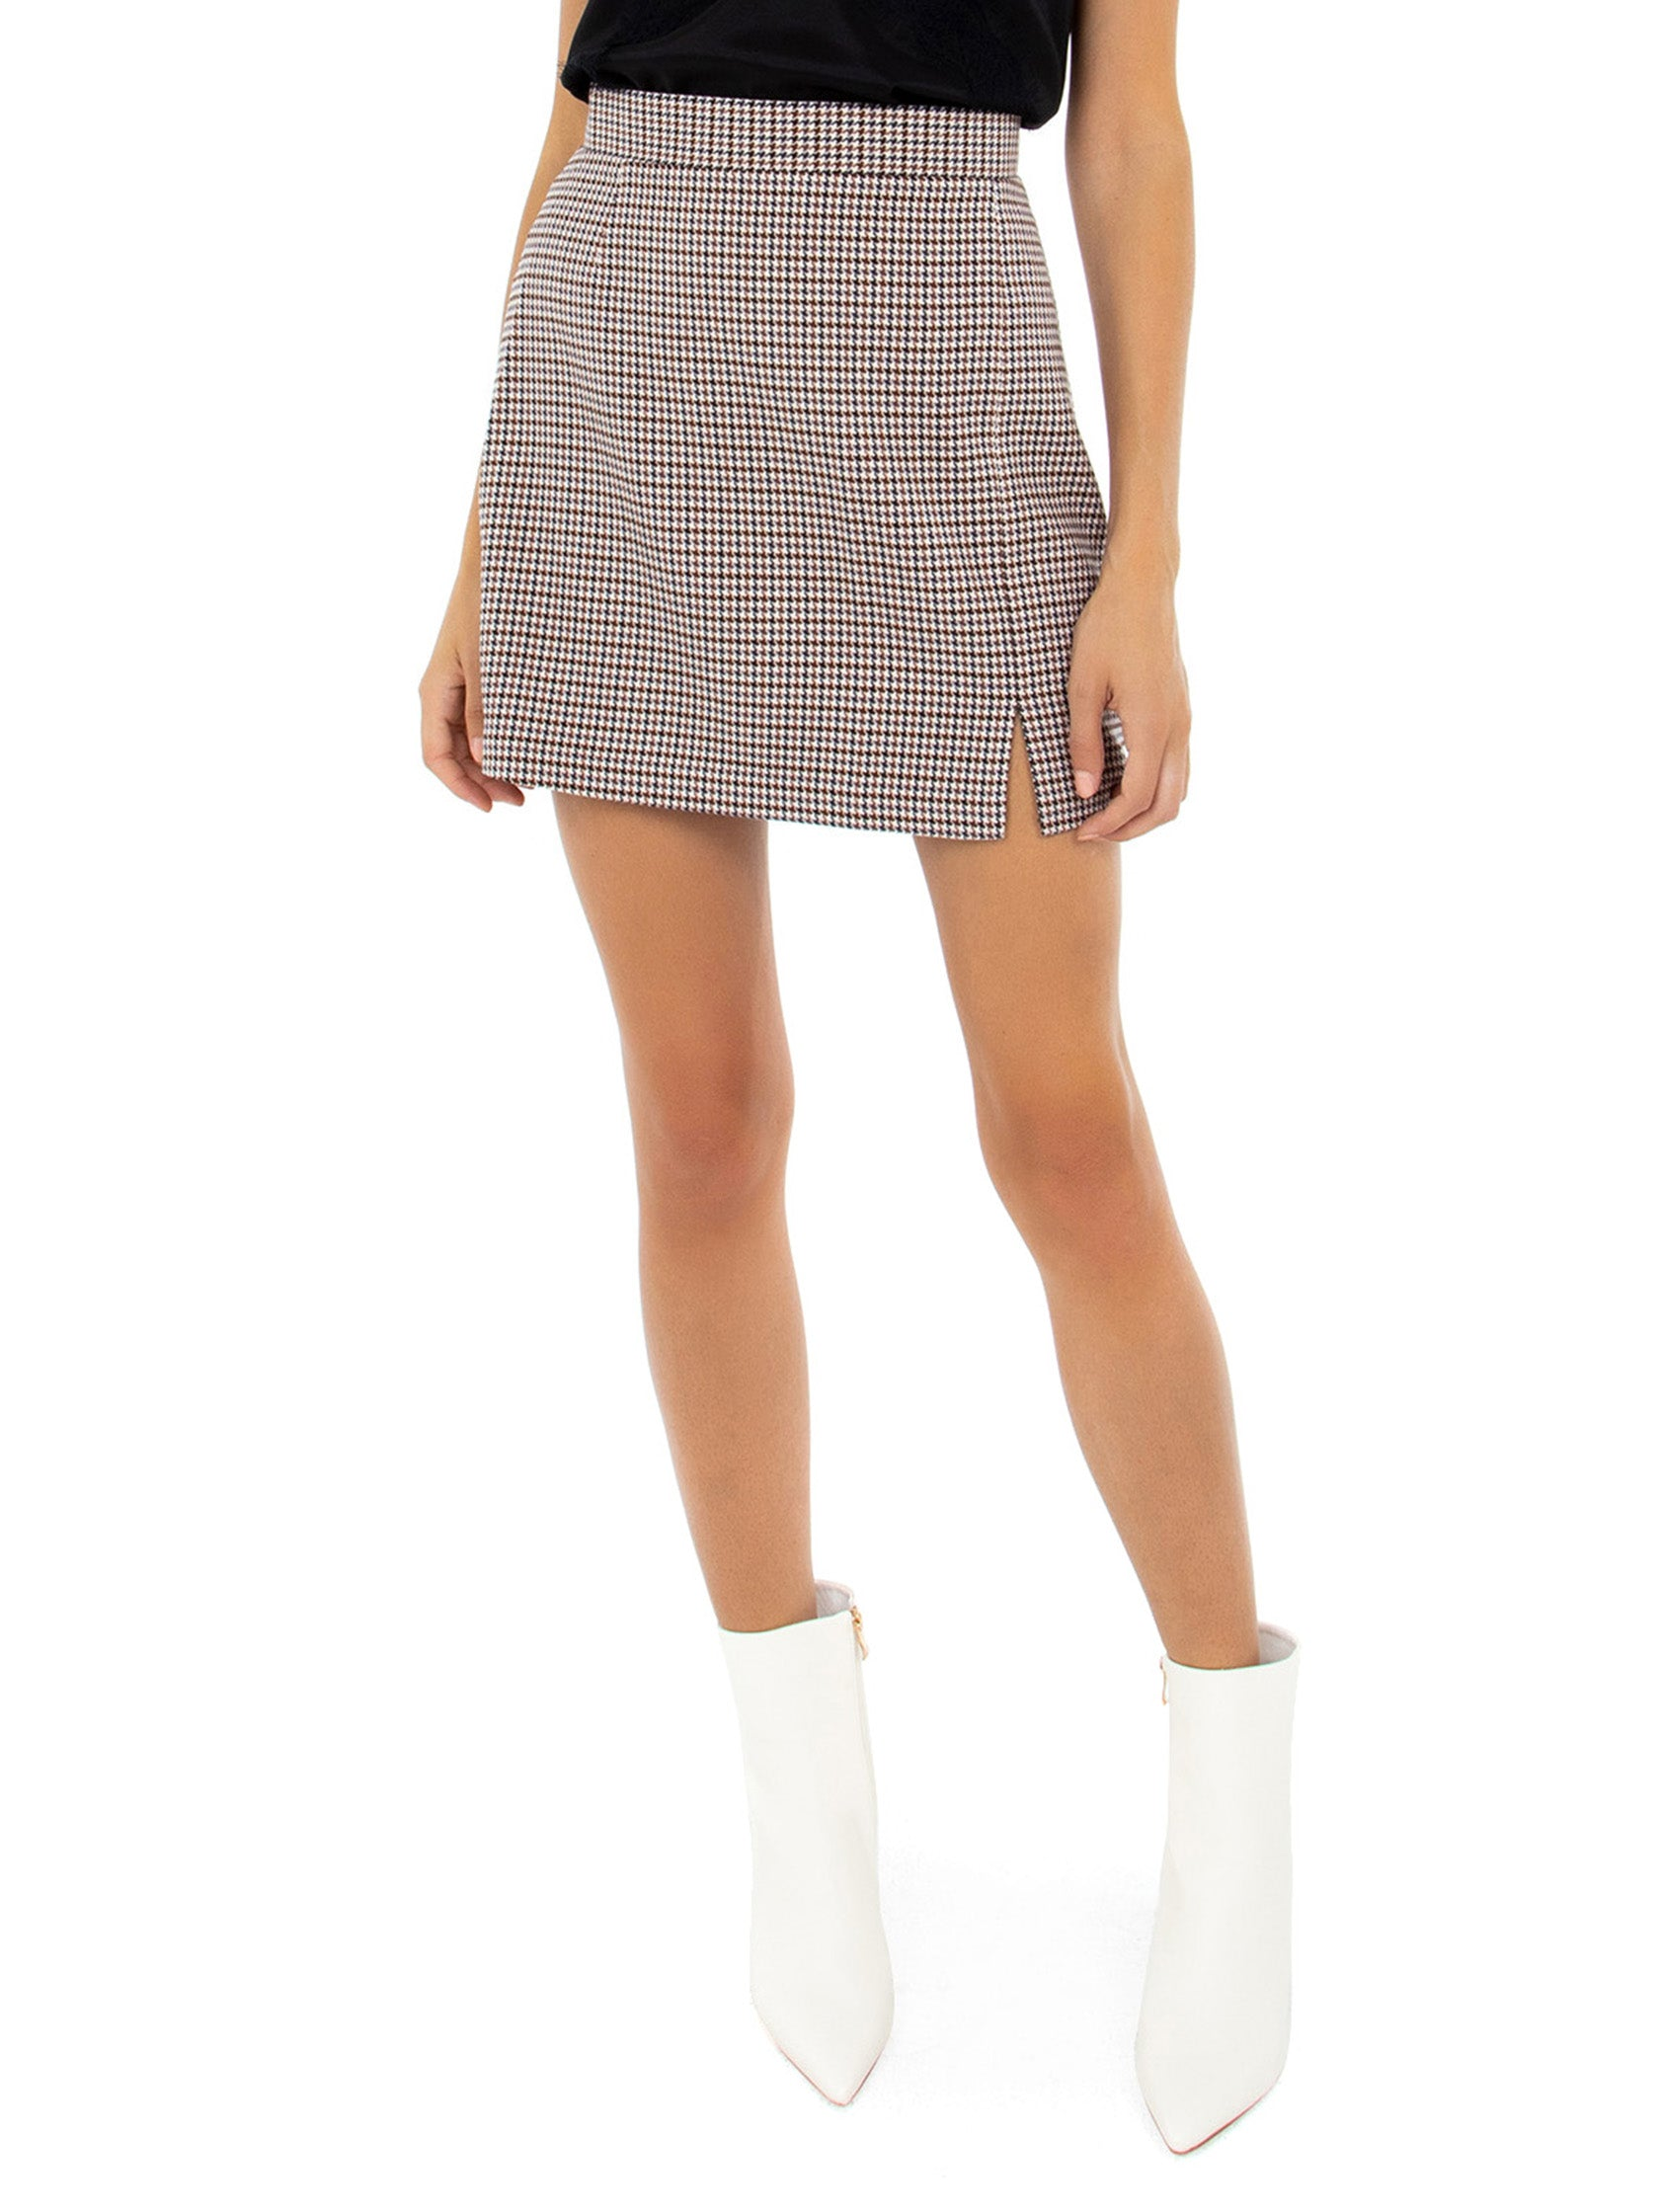 Woman wearing a skirt rental from BB Dakota called Check It Out Skirt